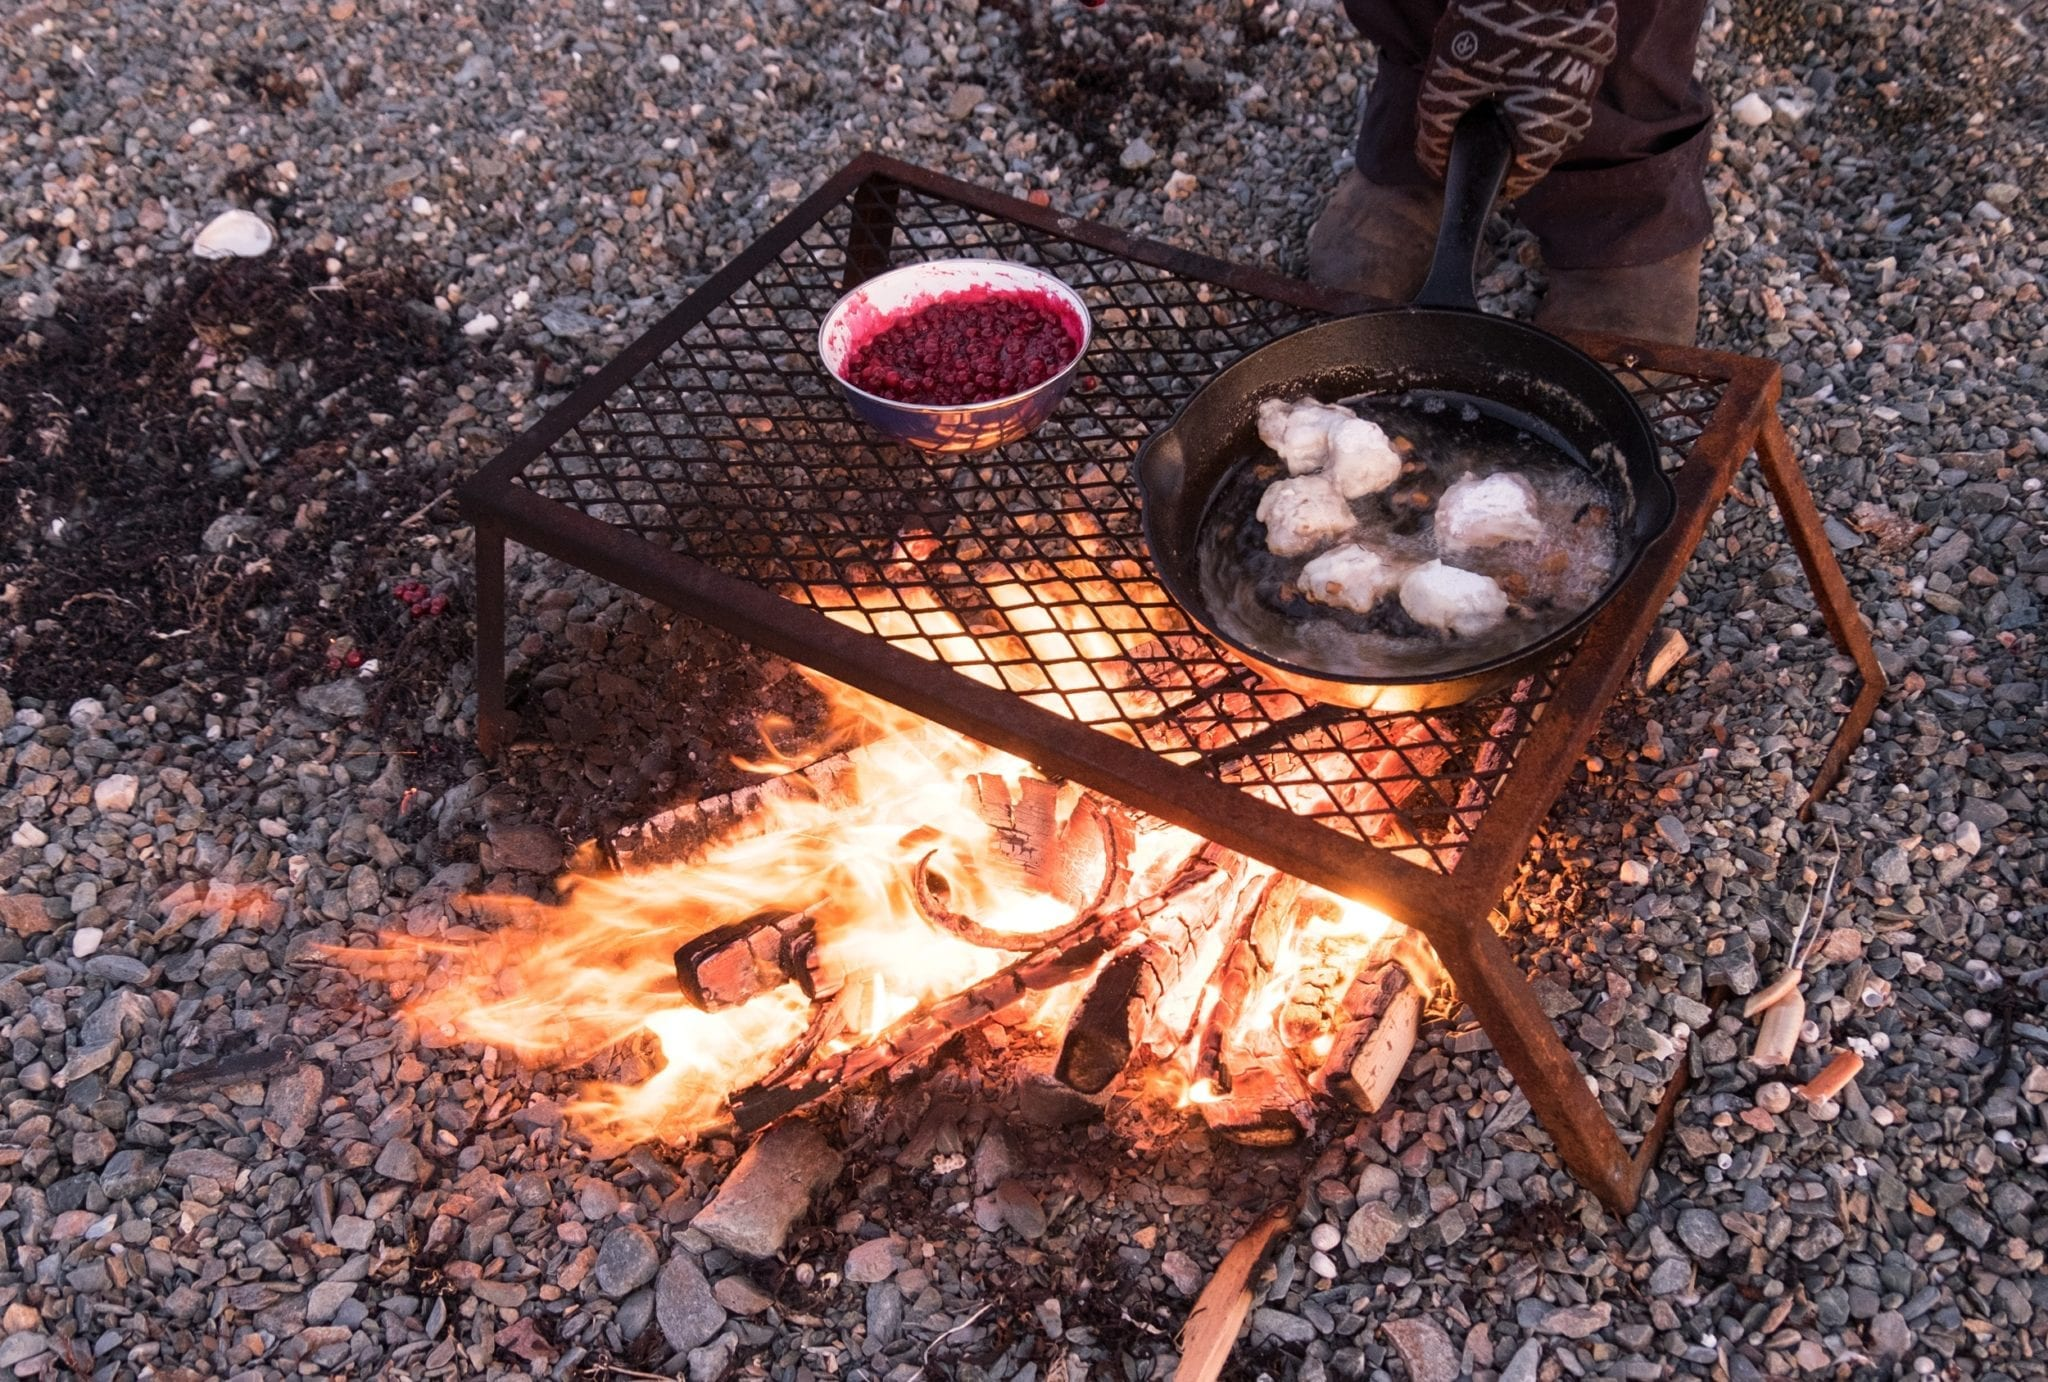 A campfire with a grill on top: cod tongues cooking in a skillet on one side, berries cooking in a dish on the other.